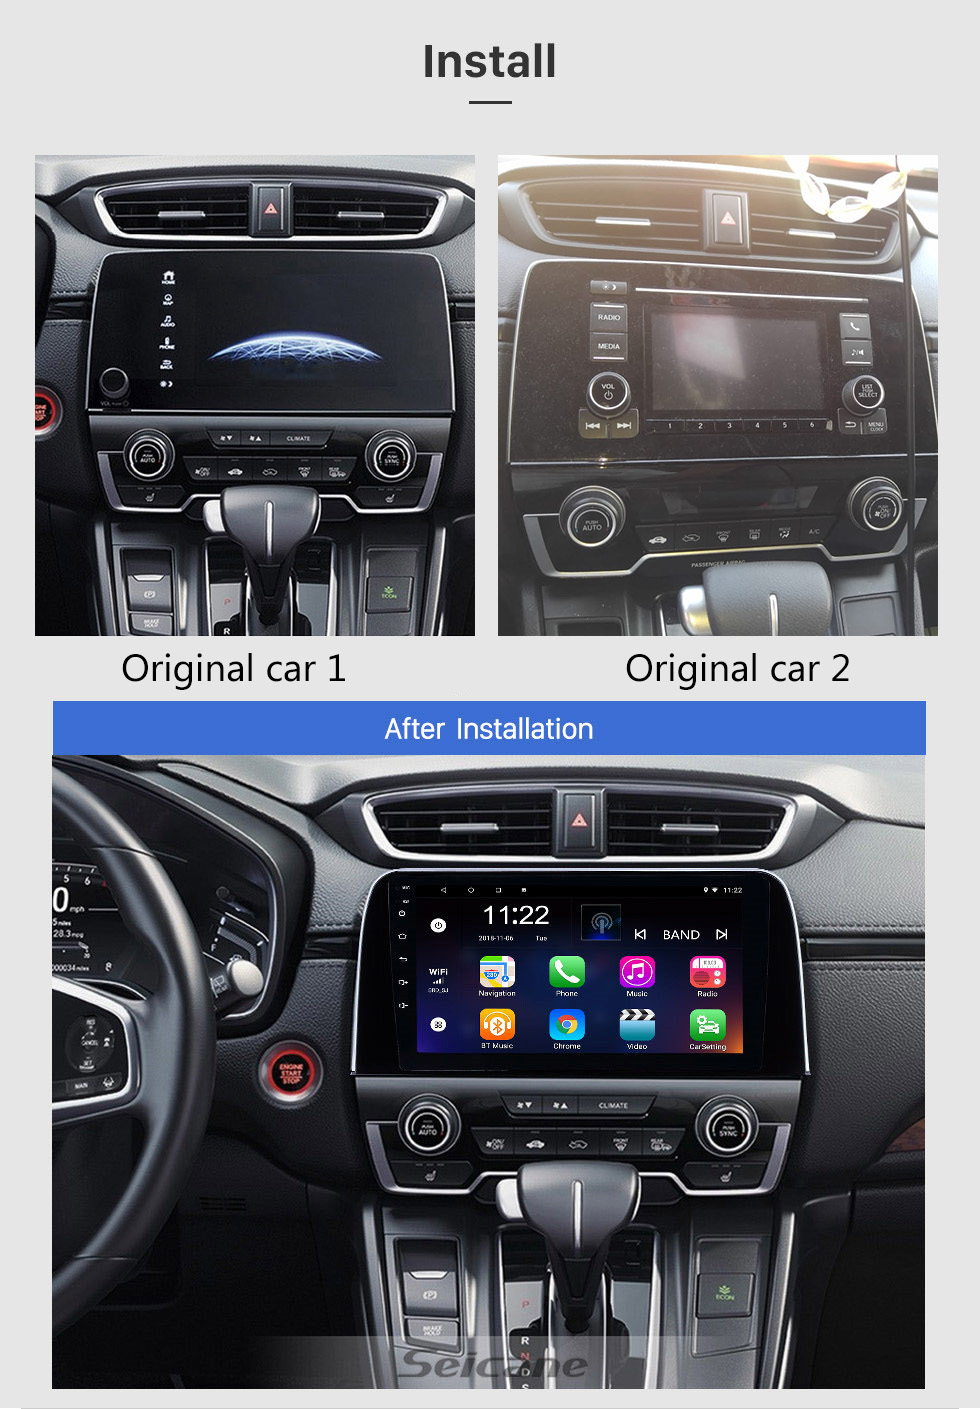 Seicane 2017 2018 Honda CRV 9 inch Android 10.0 HD Touchscreen Bluetooth GPS Navigation Radio USB AUX support Carplay 3G WIFI Mirror Link Rearview camera OBD2